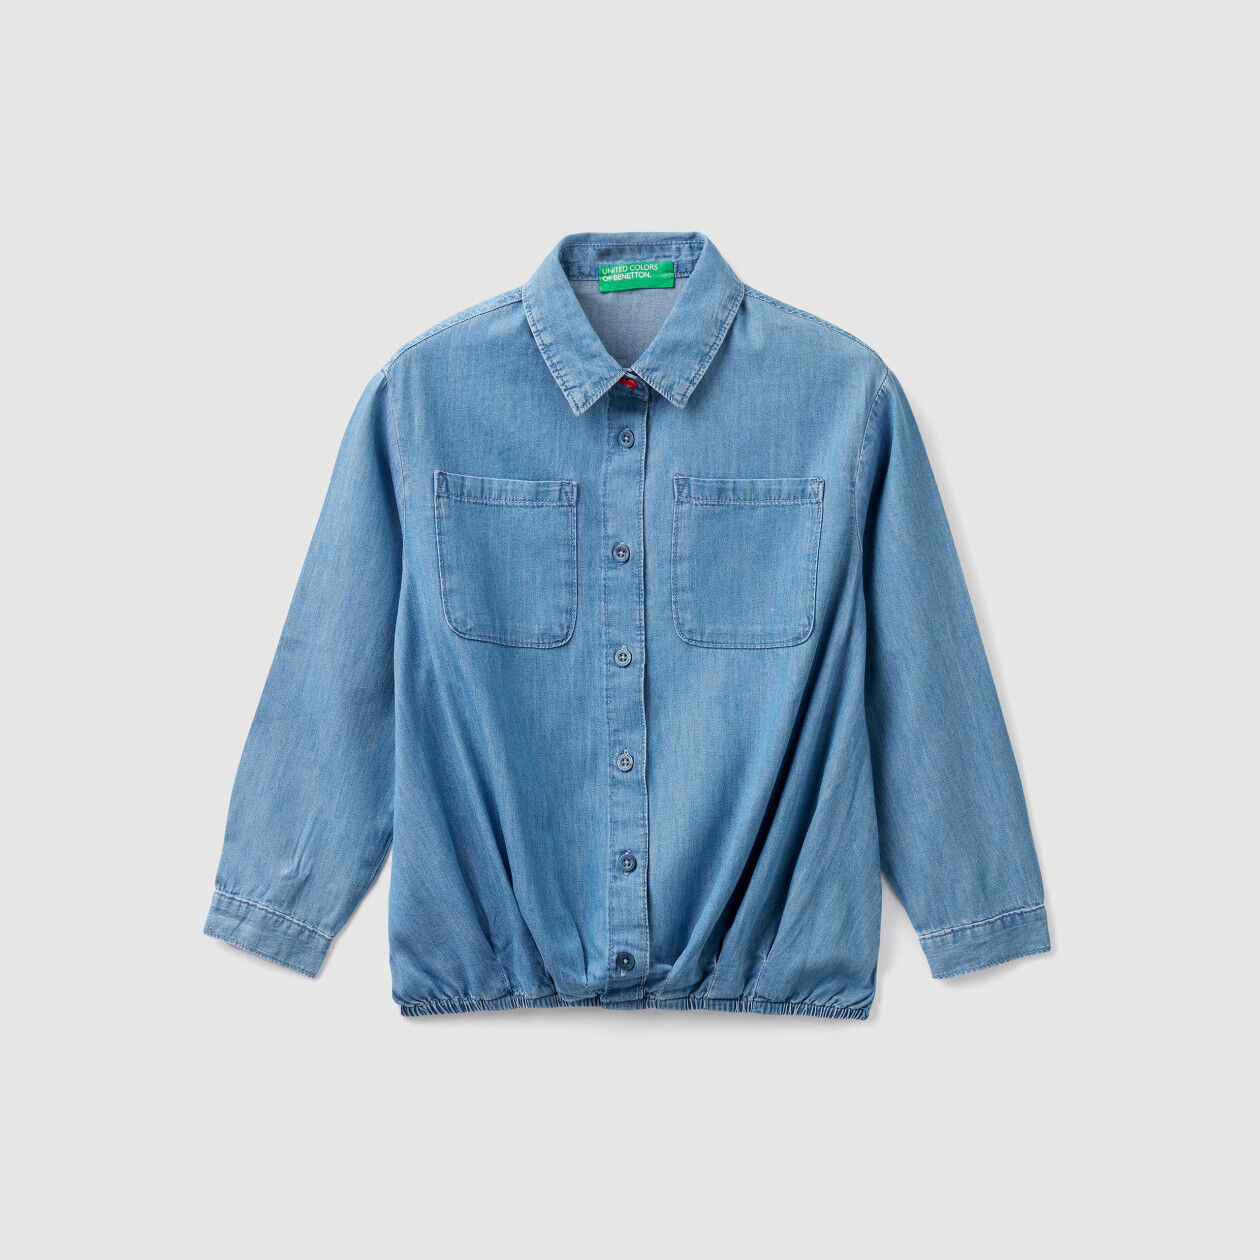 Shirt with elastic at the bottom